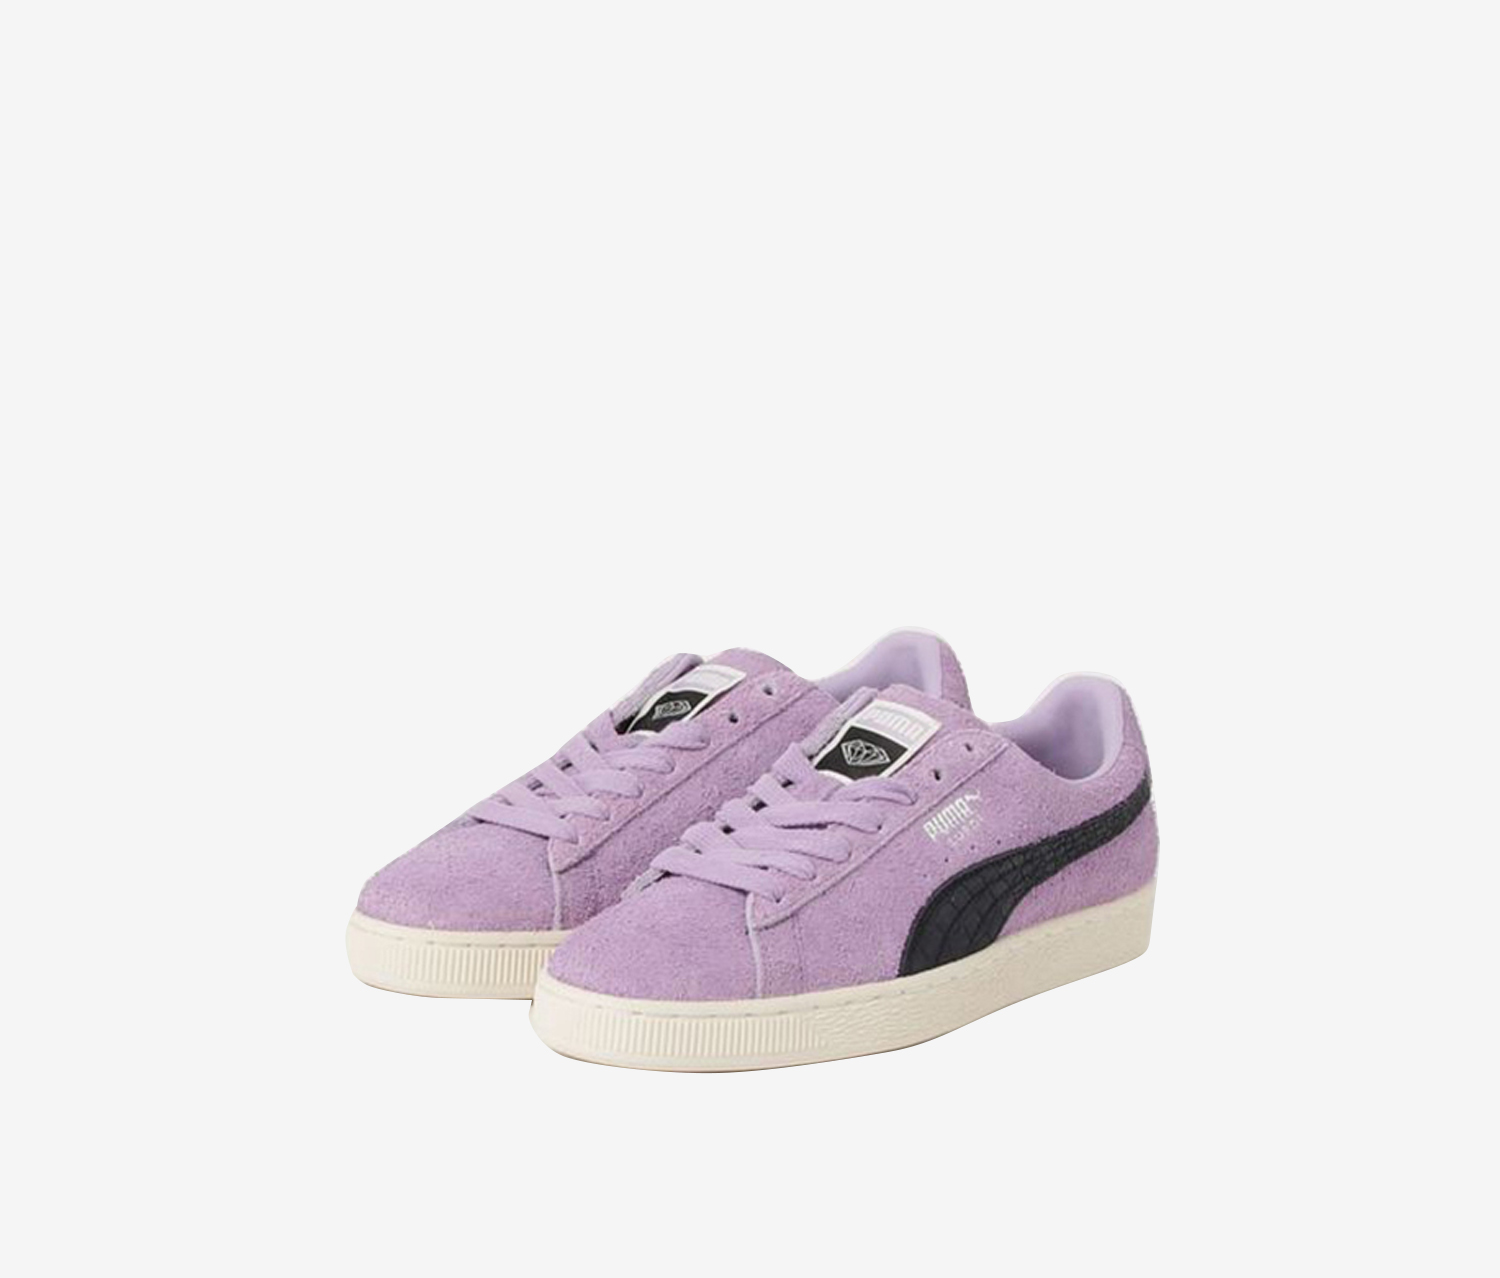 Puma Big Girl's Suede Diamond Sneakers, Light Purple